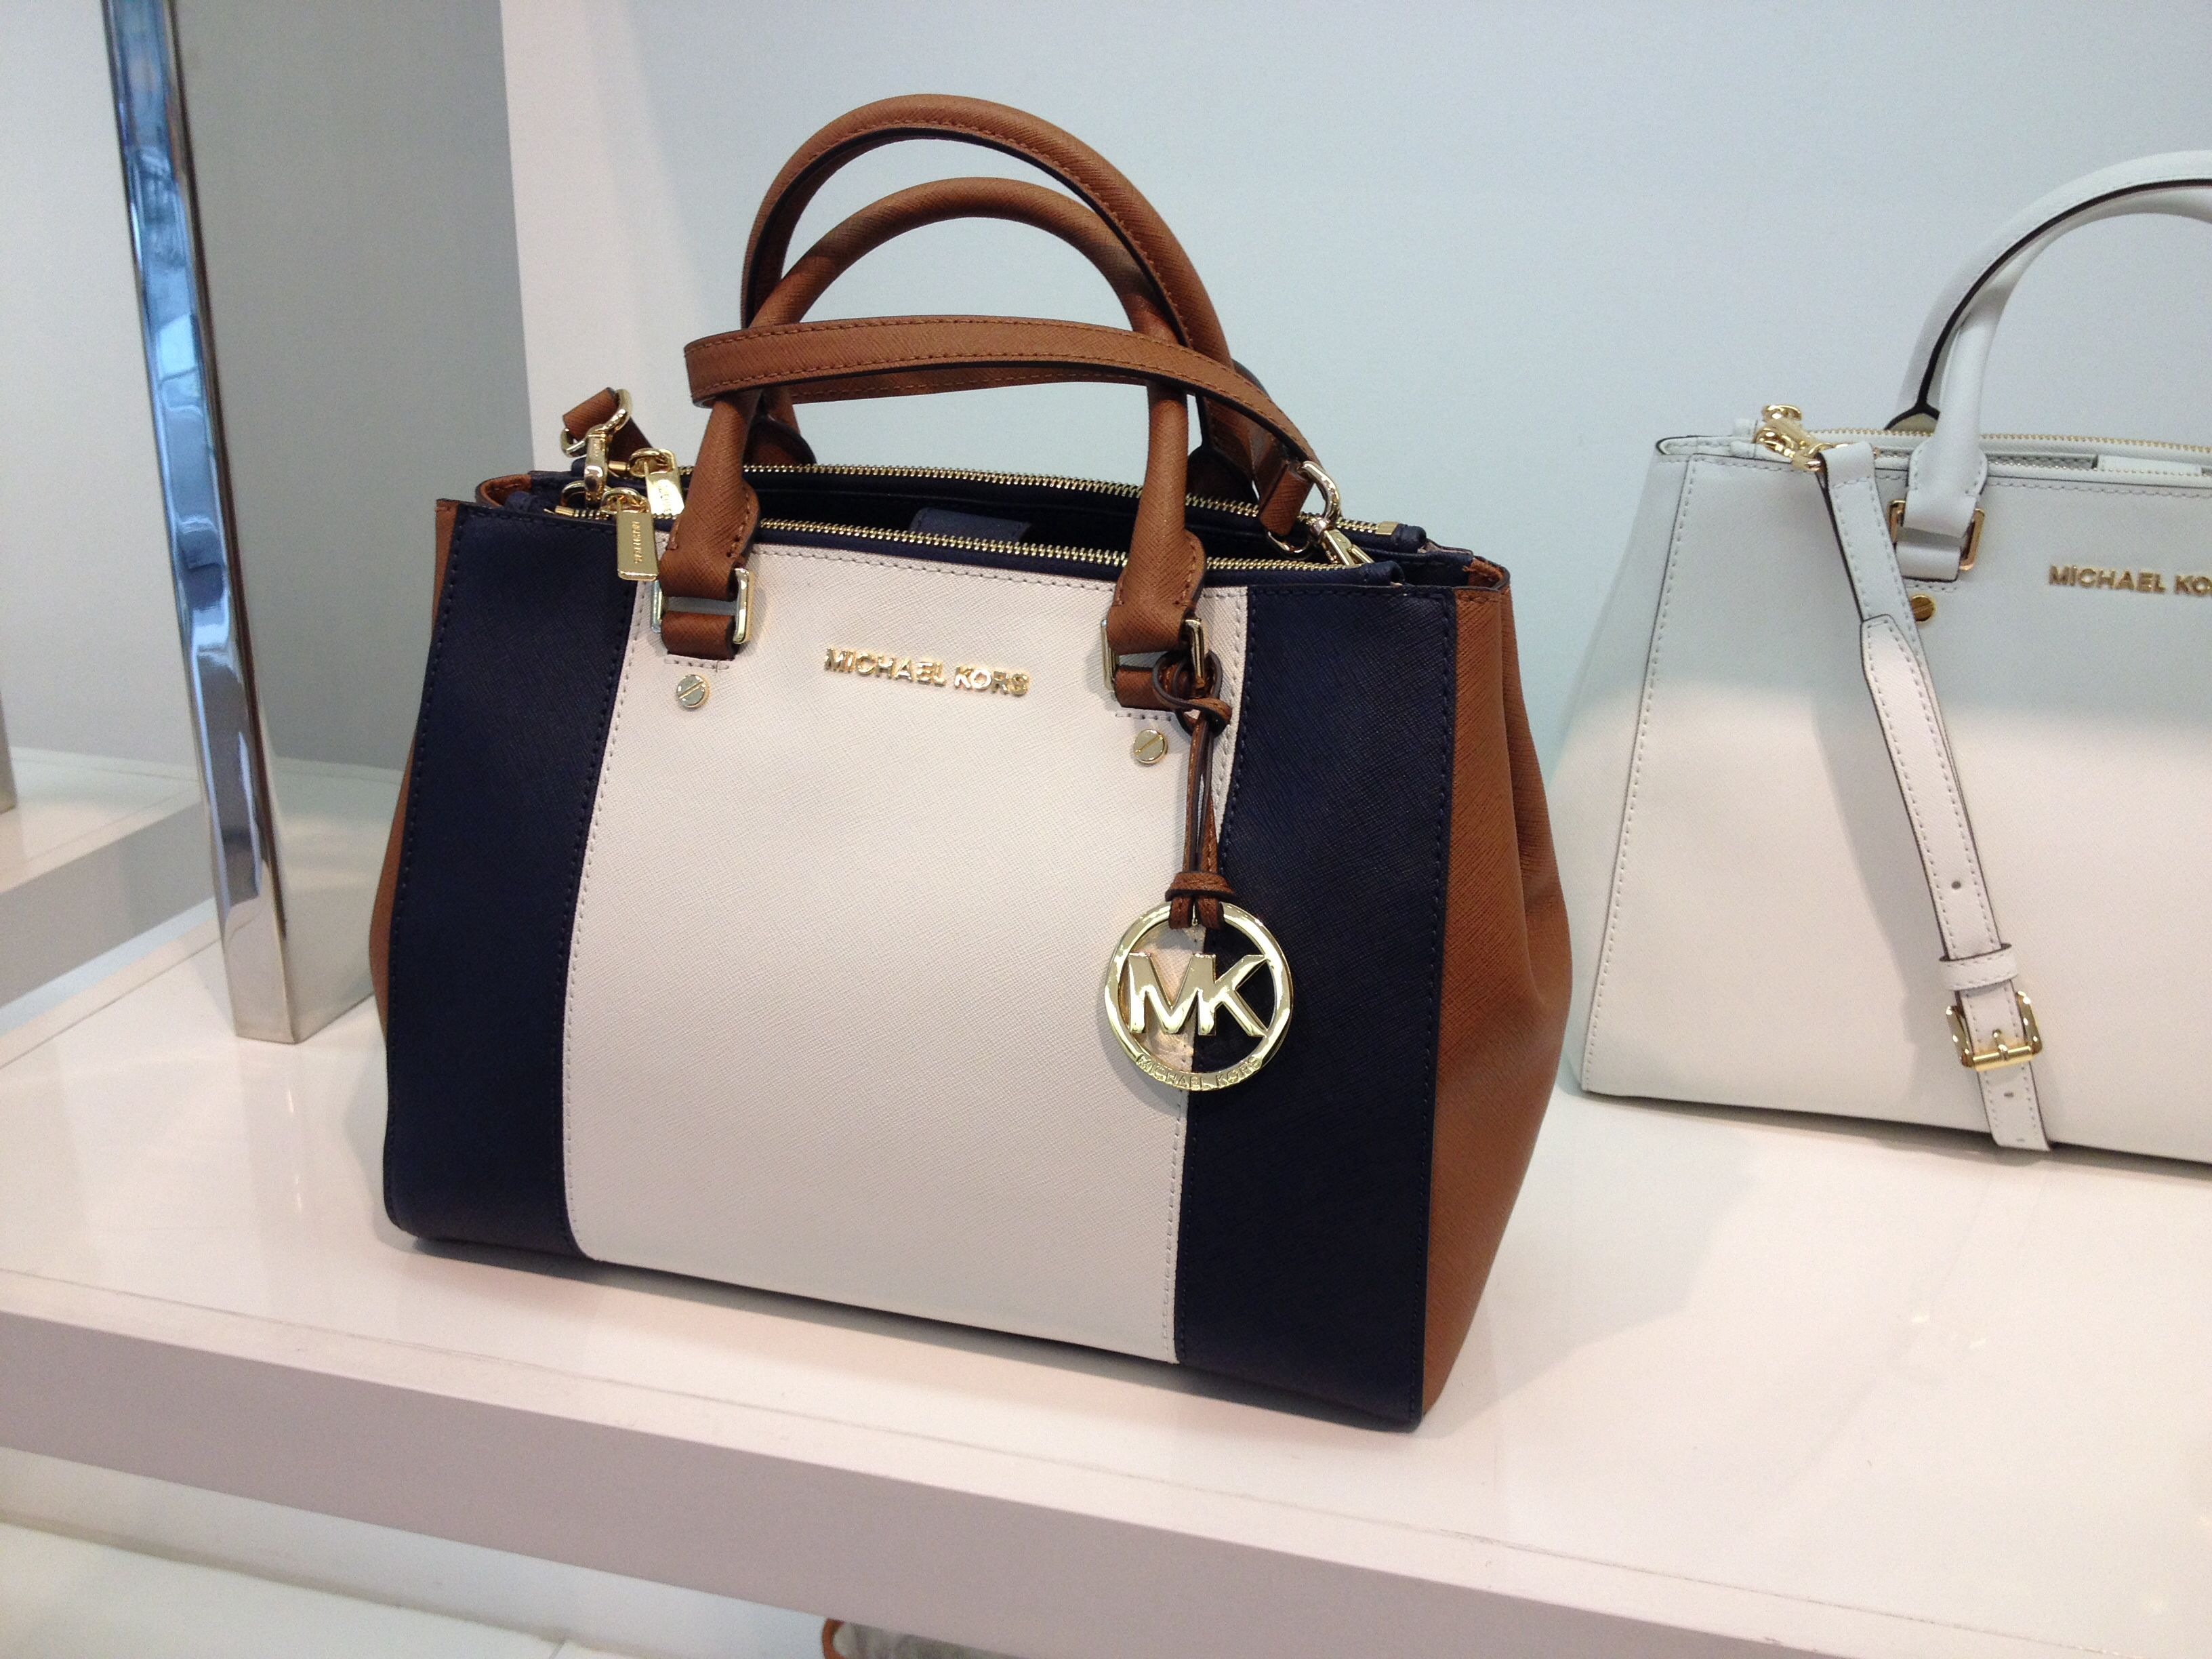 Michael kors bags in dubai - Sutton Center Stripe By Michael Kors